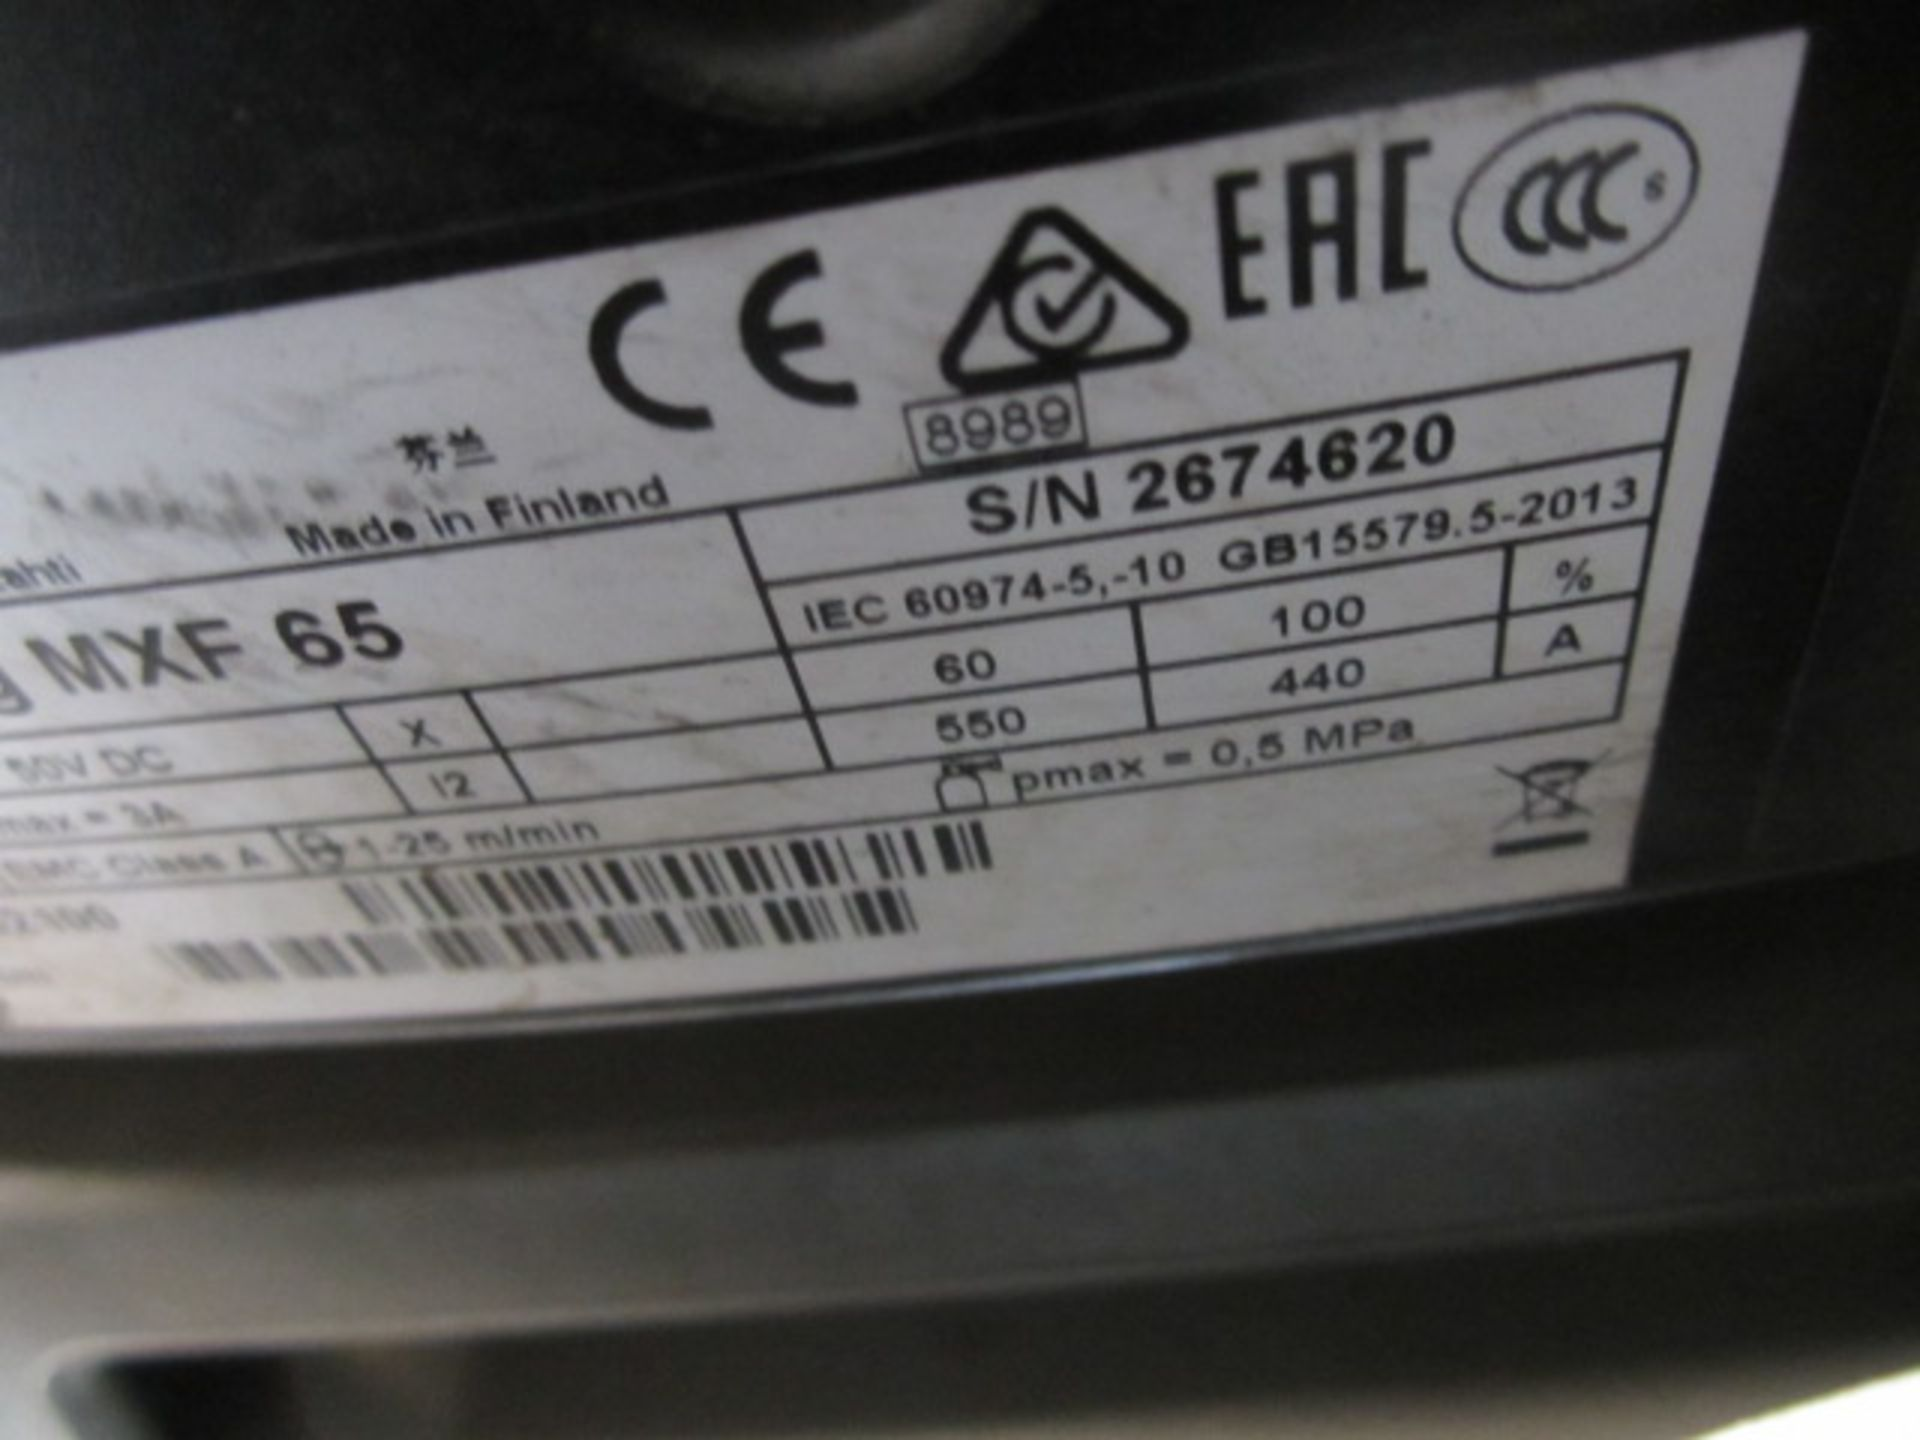 Kemppi Fast Mig M420 mig welder, serial no. 2674175, with Fast Mig MXF65 wire feeder, serial no. - Image 6 of 7